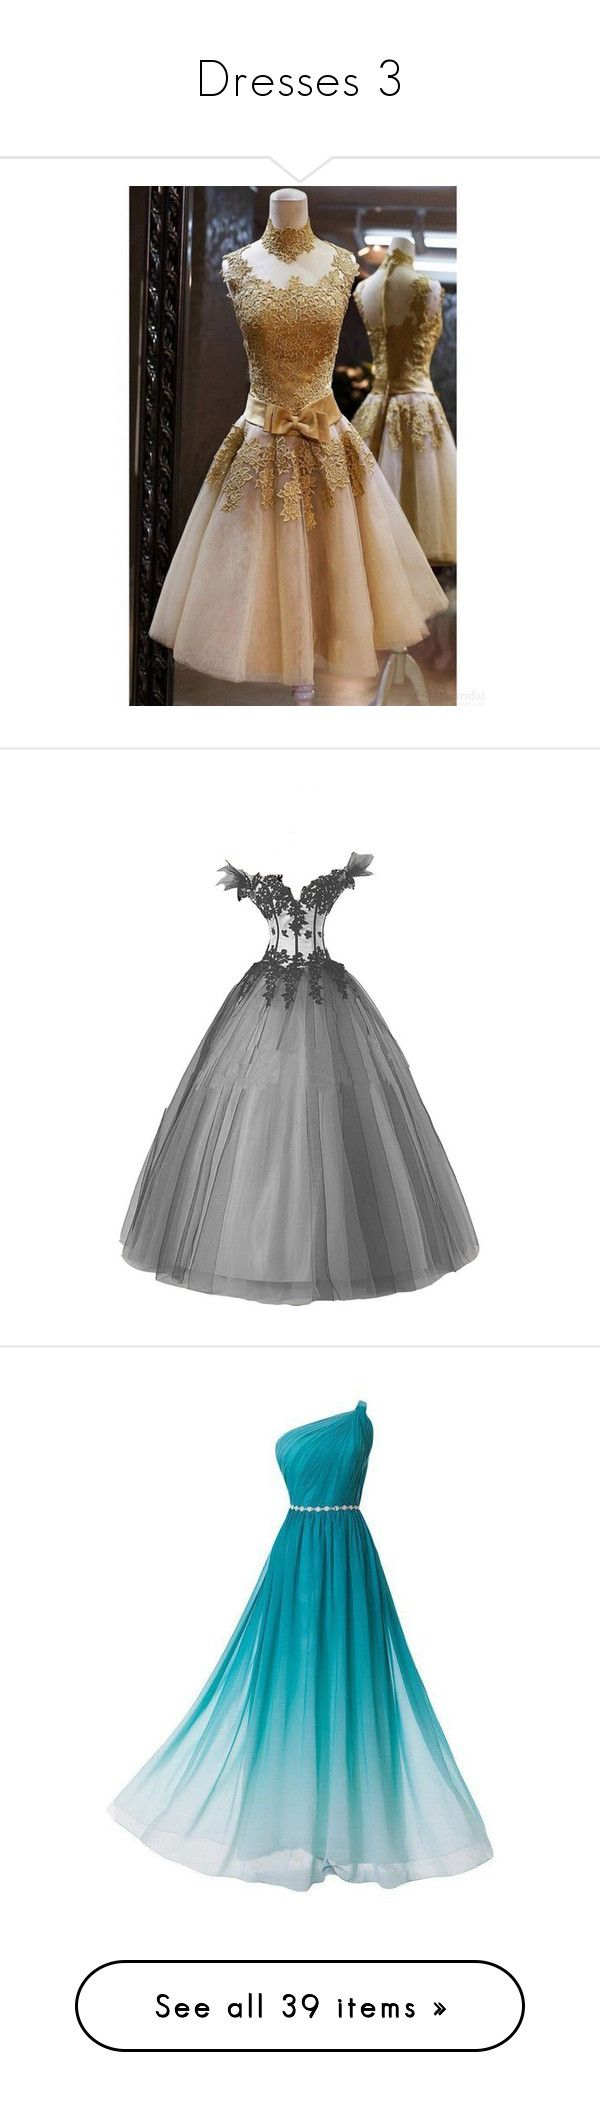 """Dresses 3"" by annearchy ❤ liked on Polyvore featuring dresses, gowns, long dress, robe, long evening dresses, black and white cocktail dress, long lace evening dresses, lace evening gowns, lace evening dresses and blue"